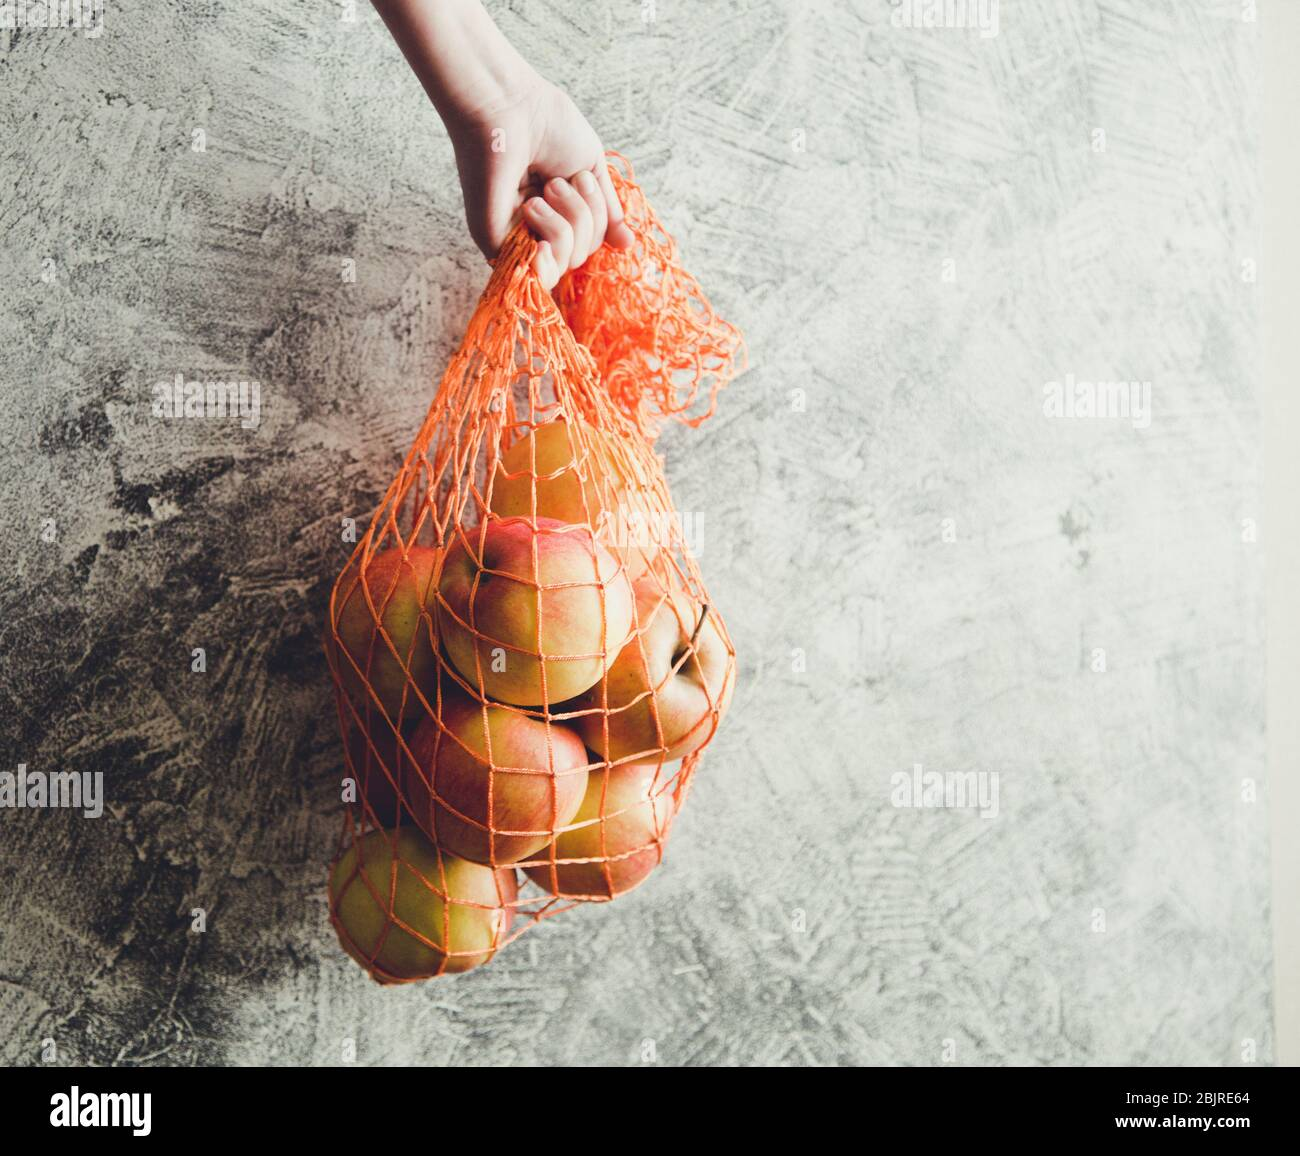 Concept-ecology, nature conservation, no plastic bags. Reusable mesh bag with apples, copy space/ Stock Photo